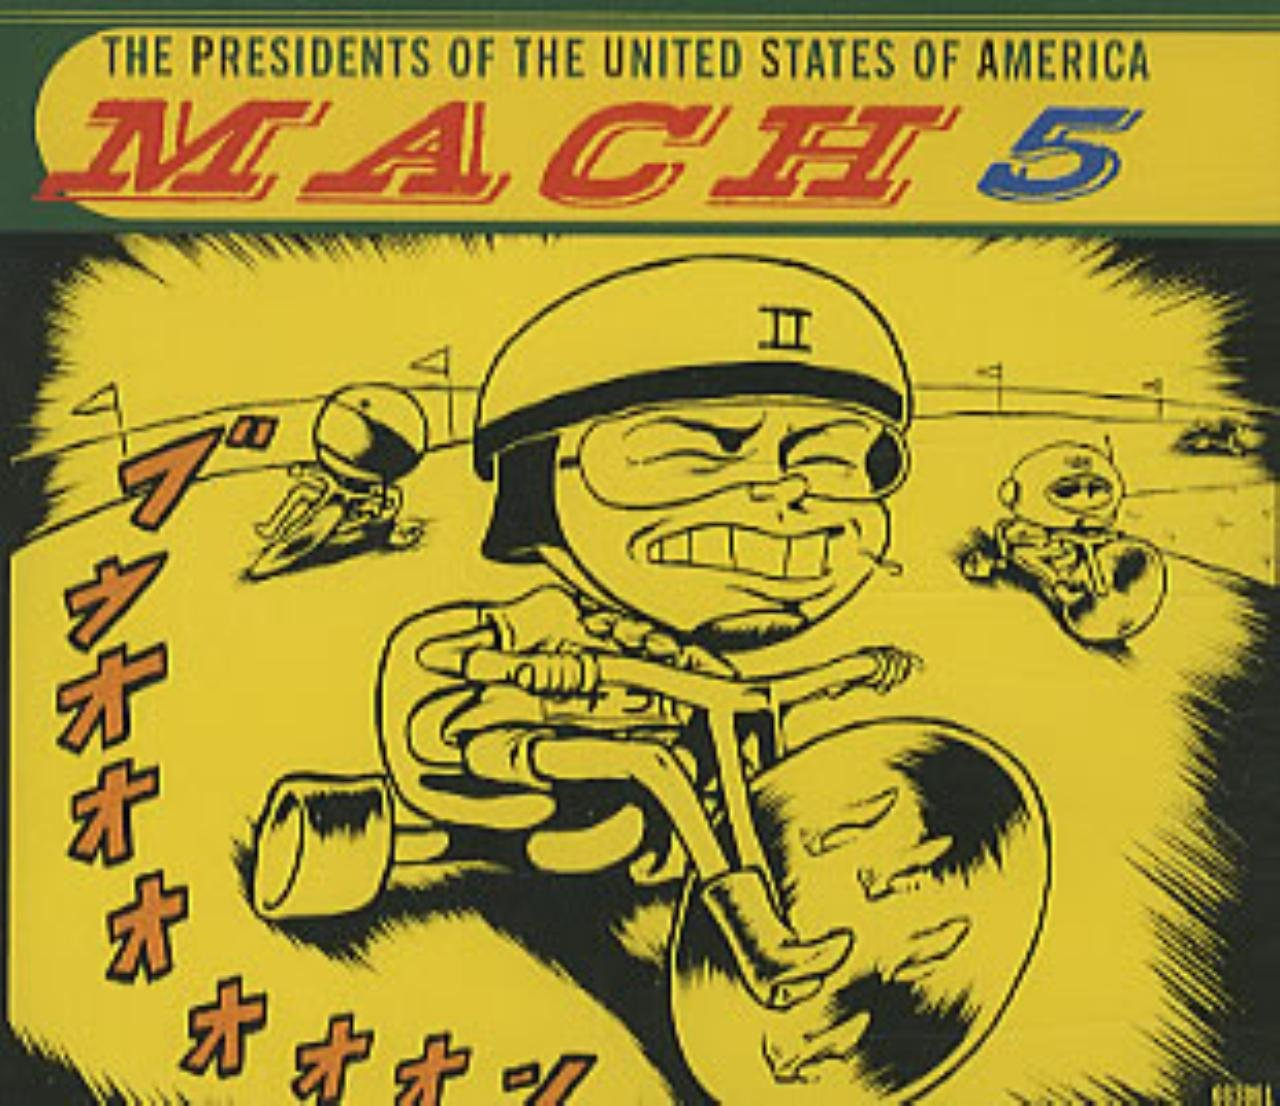 PRESIDENTS OF THE UNITED STATES OF AMERICA - Mach 5 - CD single